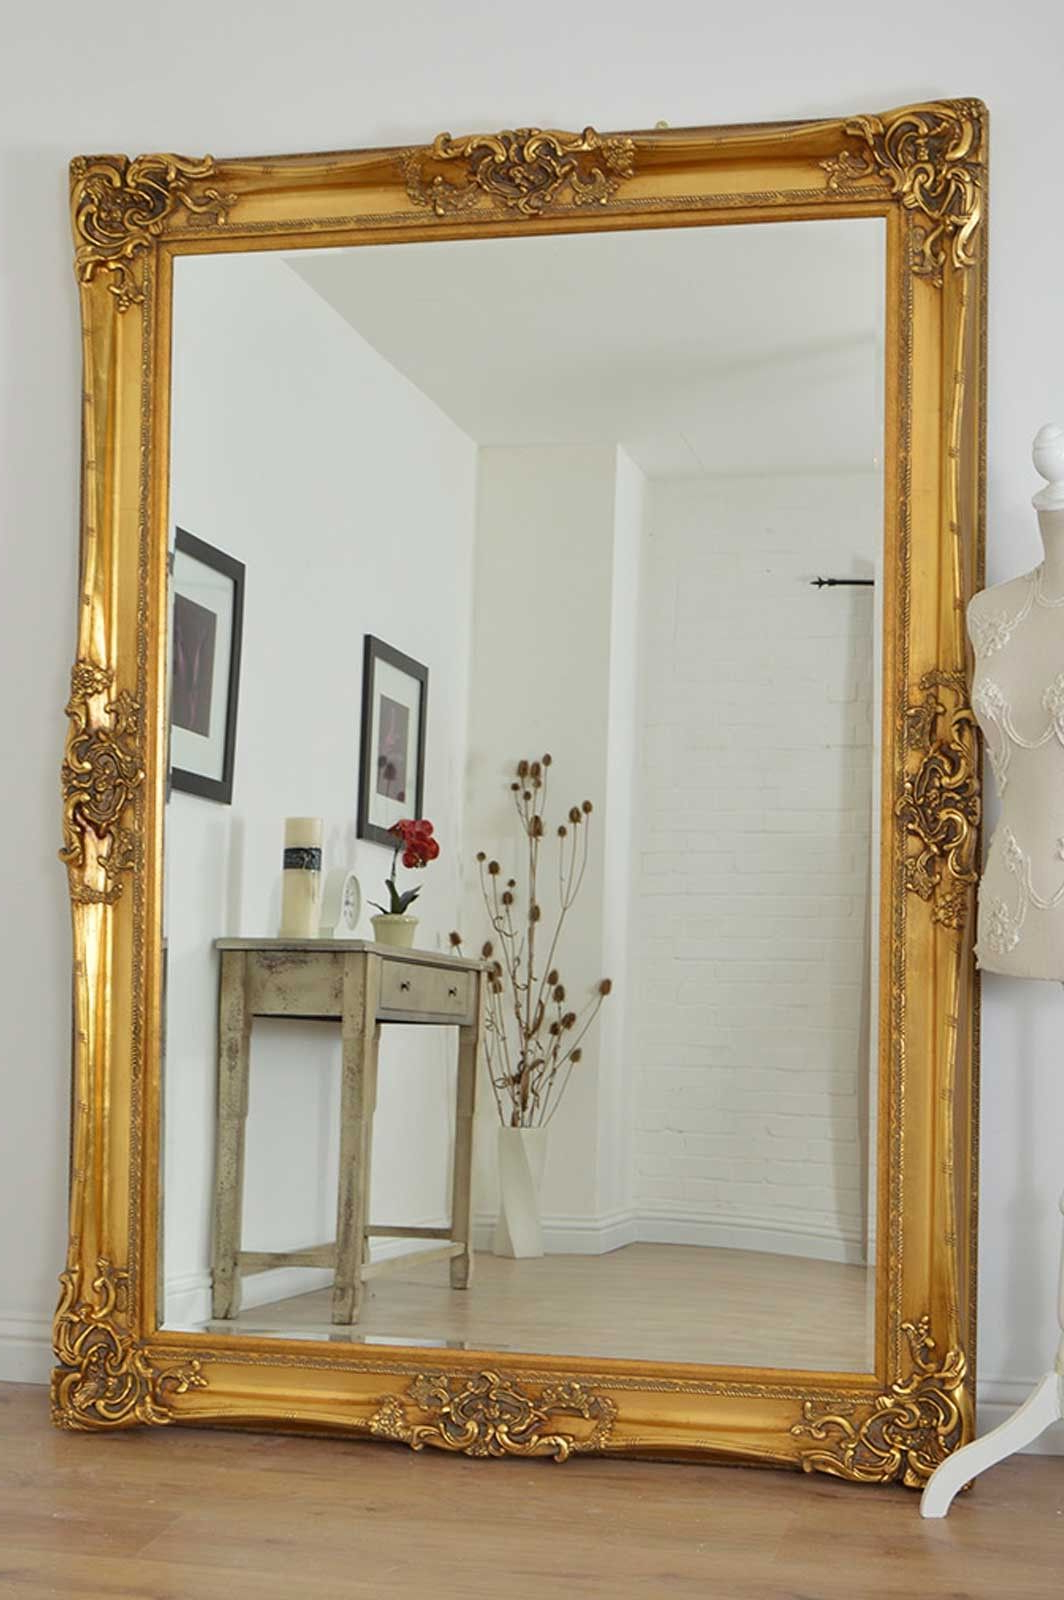 Old Fashioned Wall Mirrors For Latest Large Gold Very Ornate Antique Design Wall Mirror 7ft X 5ft (213cm X (View 5 of 20)